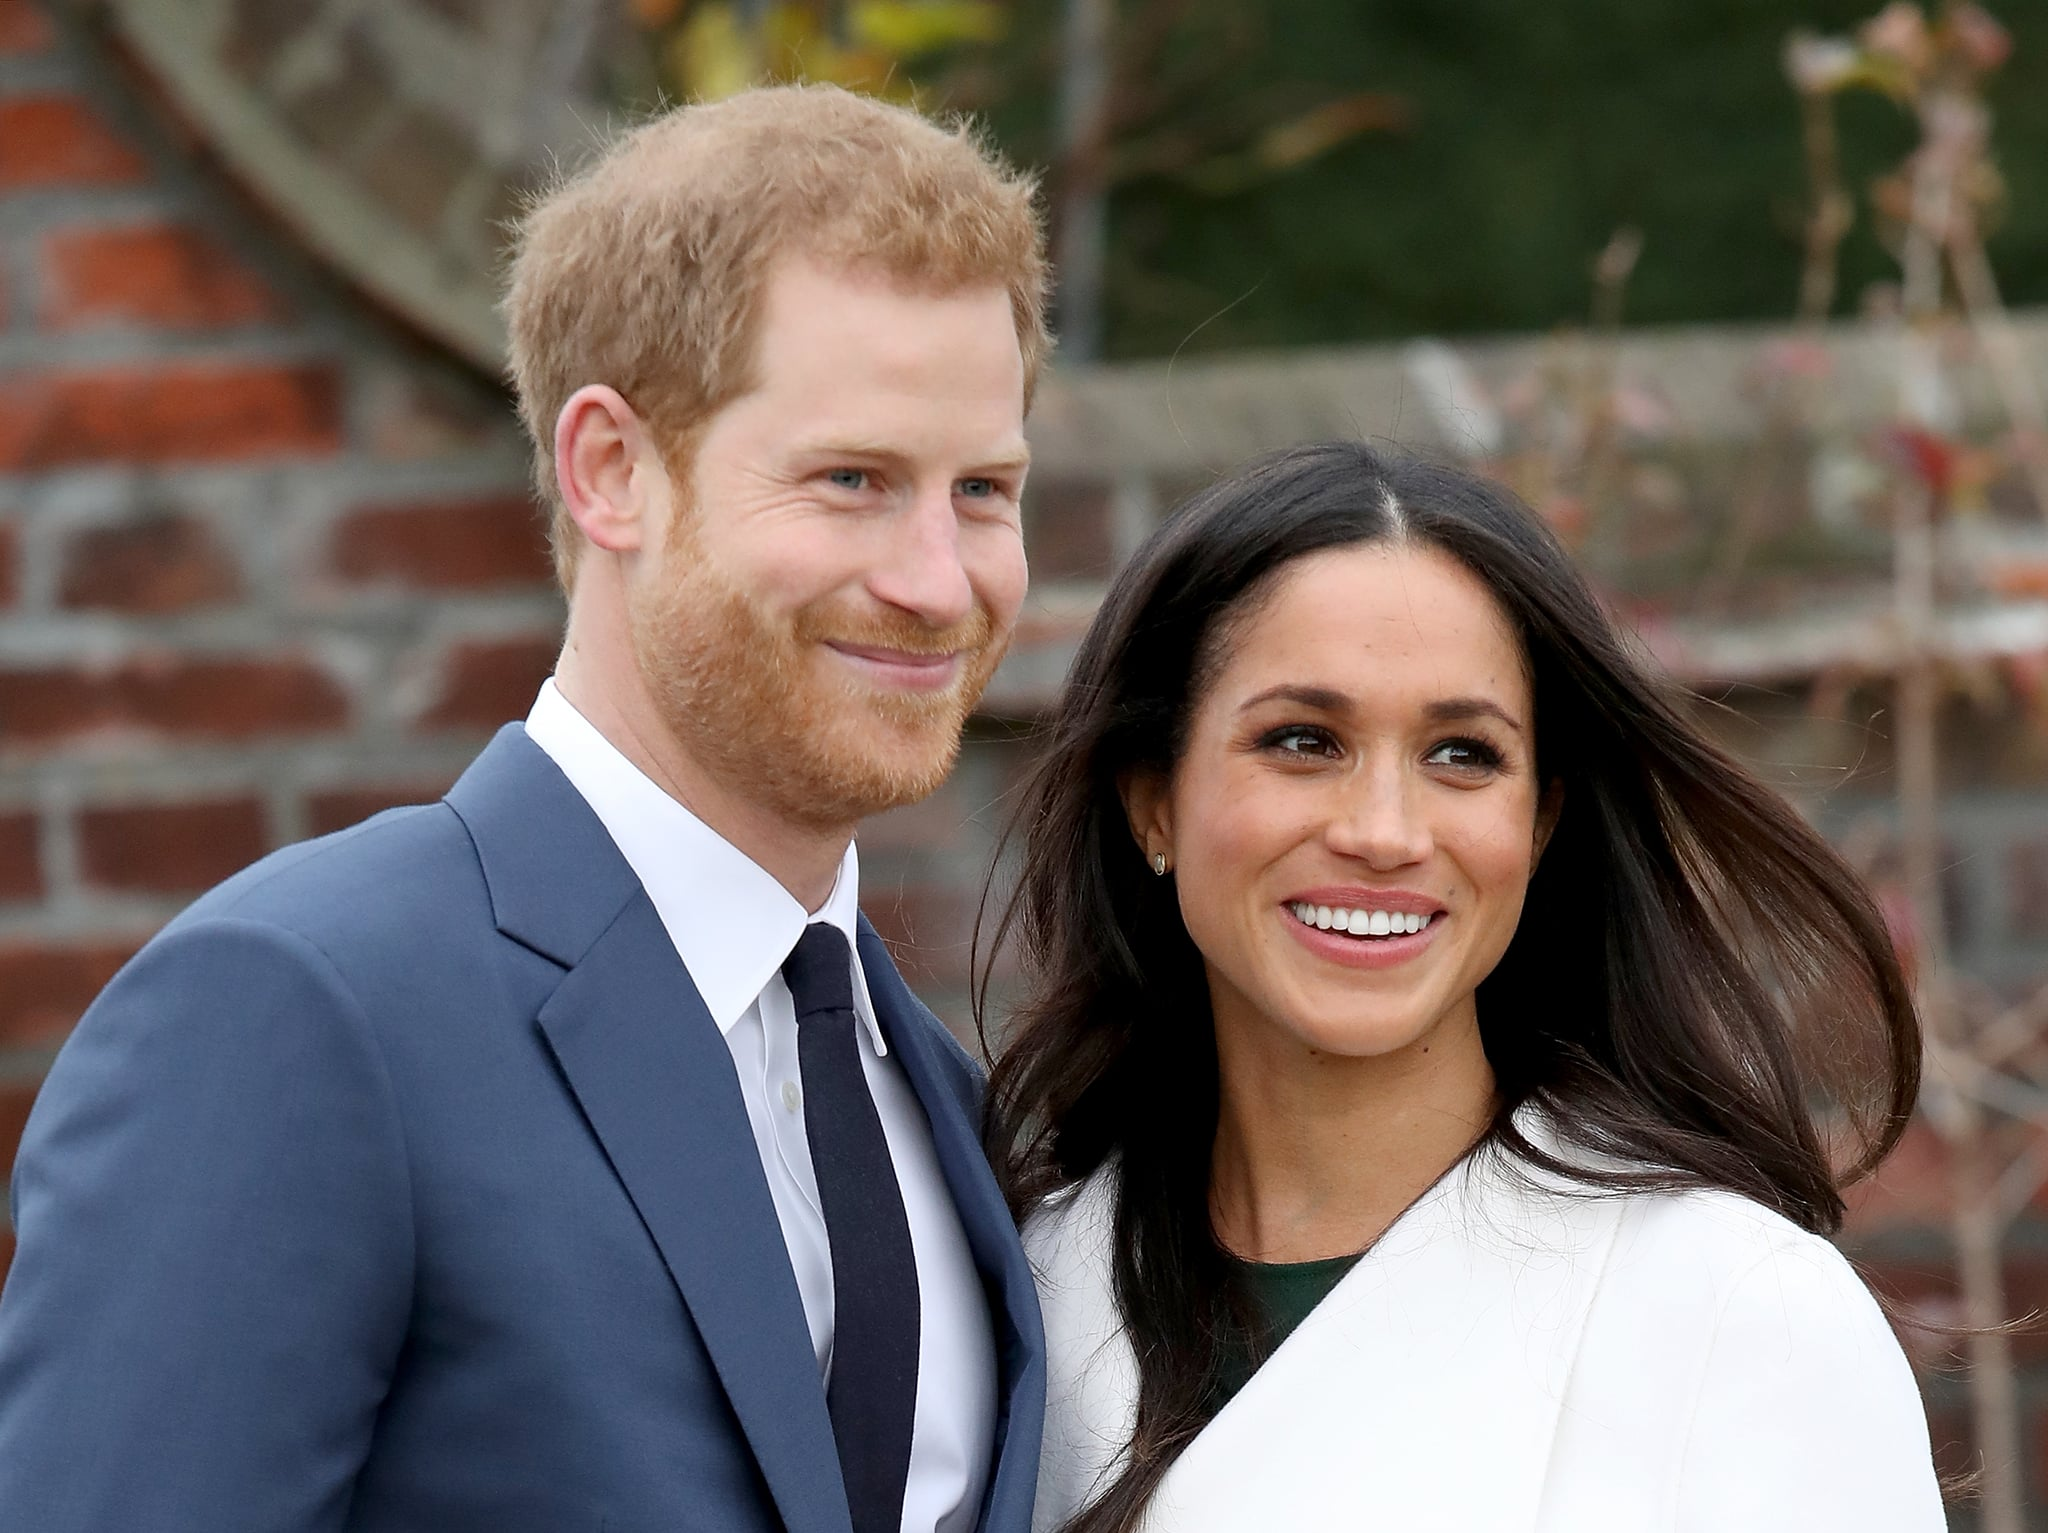 Let's Set the Record Straight: Harry and Meghan Did Not Contribute to Finding Freedom